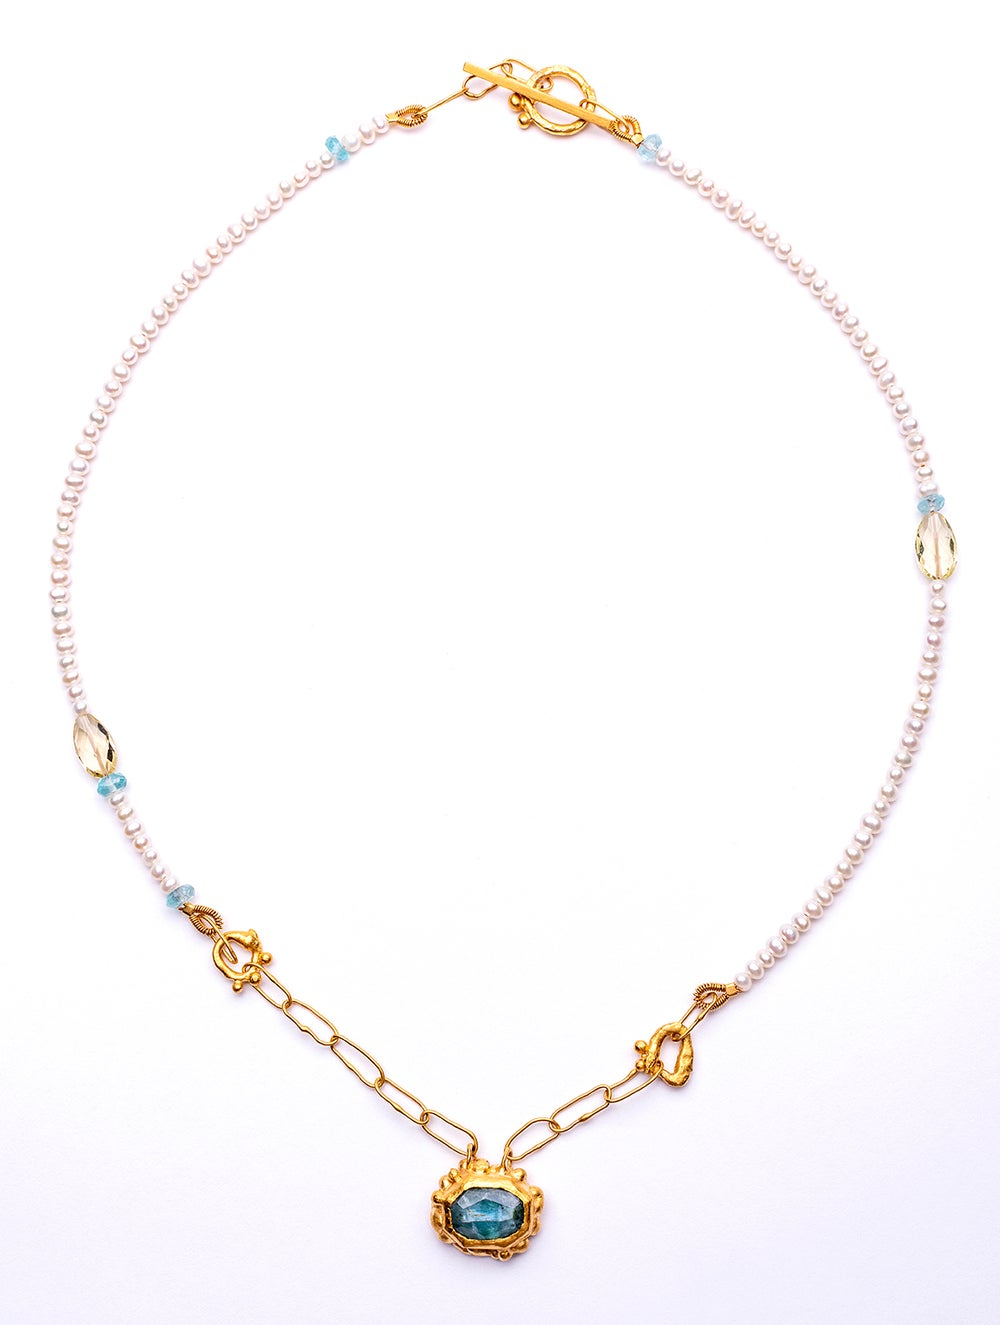 Image of Plethora necklace - Tourmaline